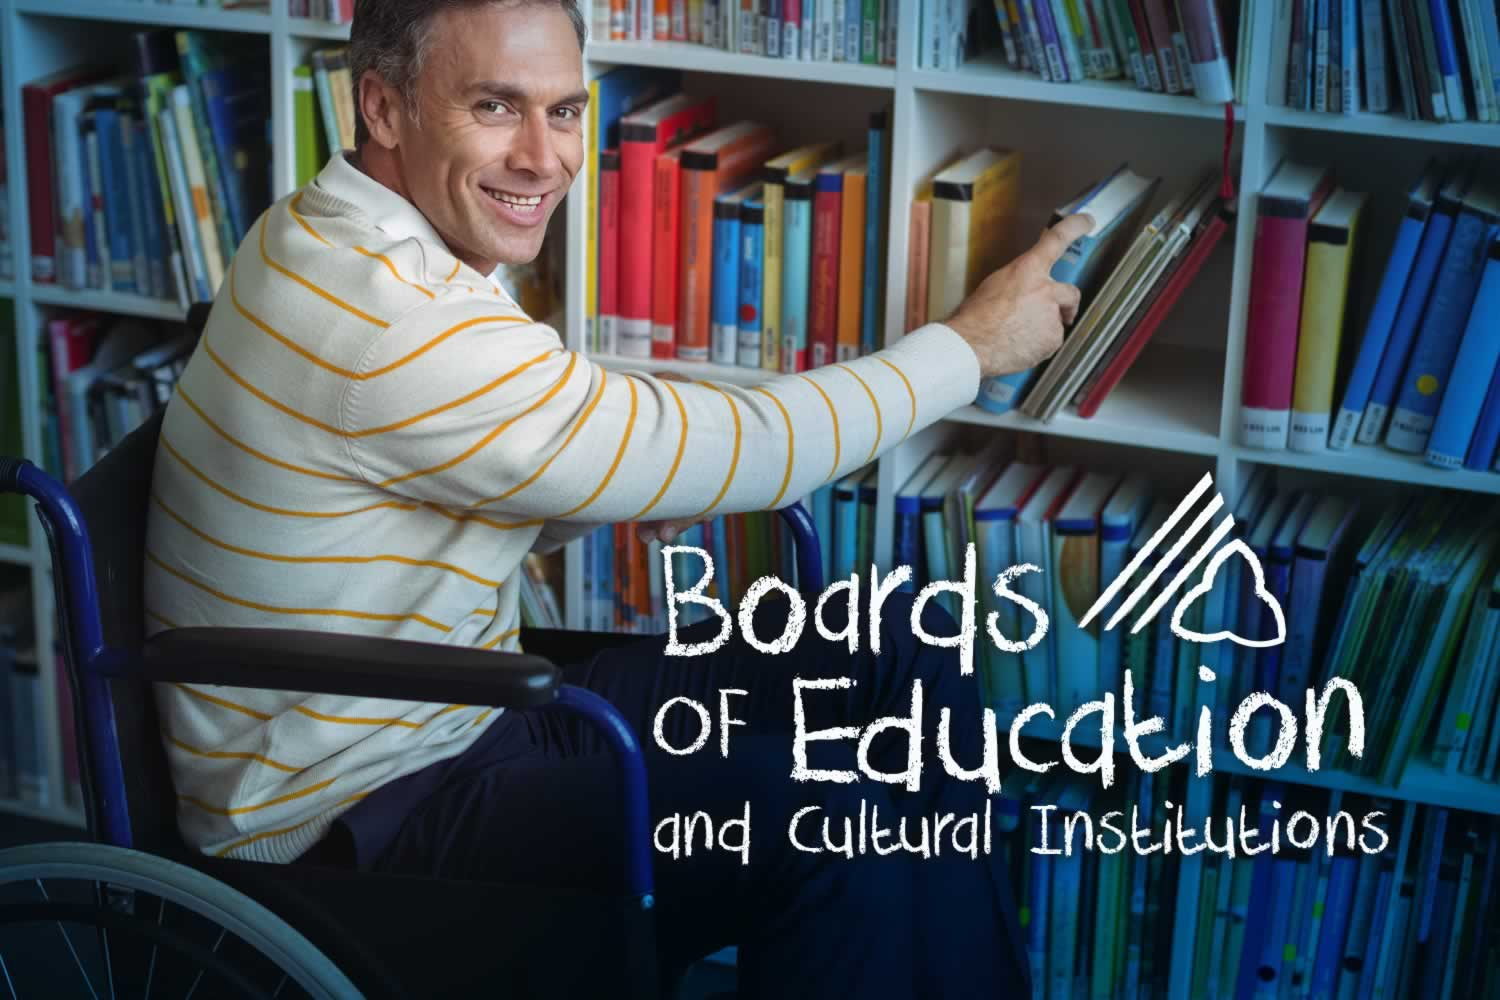 Boards of Education and Cultural Institutions. Man putting books away in library